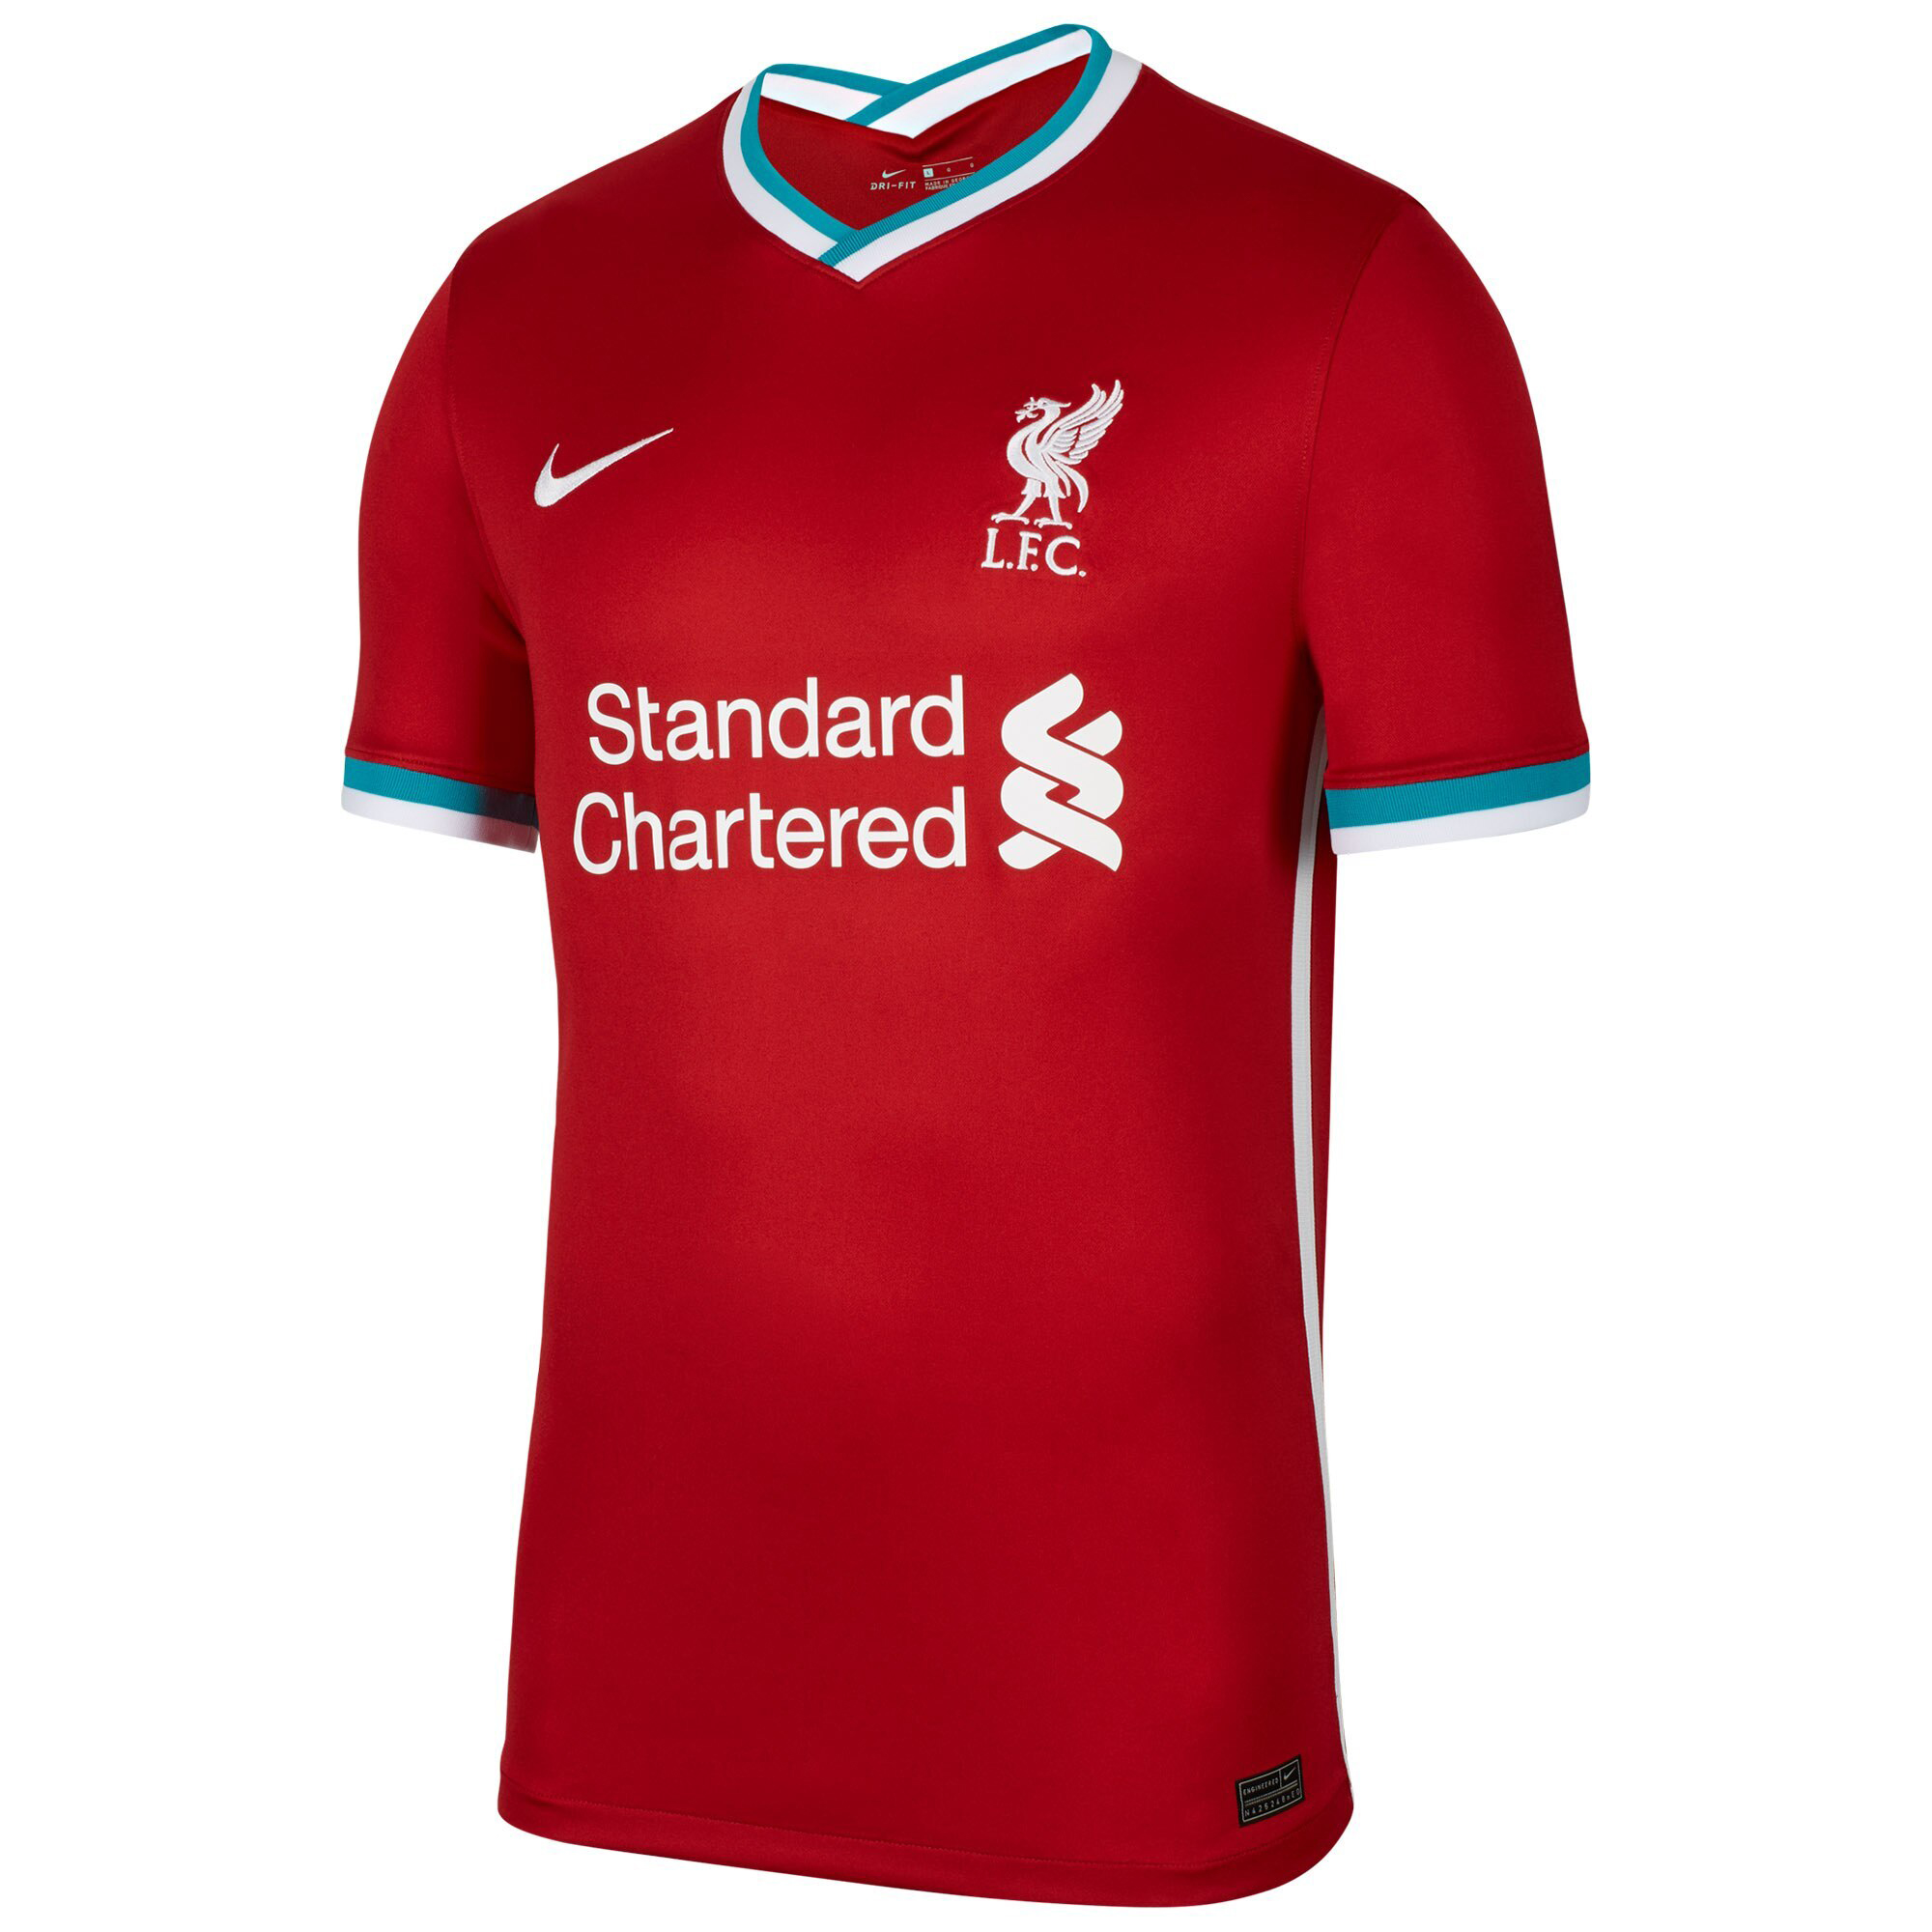 liverpool home shirt 2020 2021 sportswearspot liverpool home jersey 2020 2021